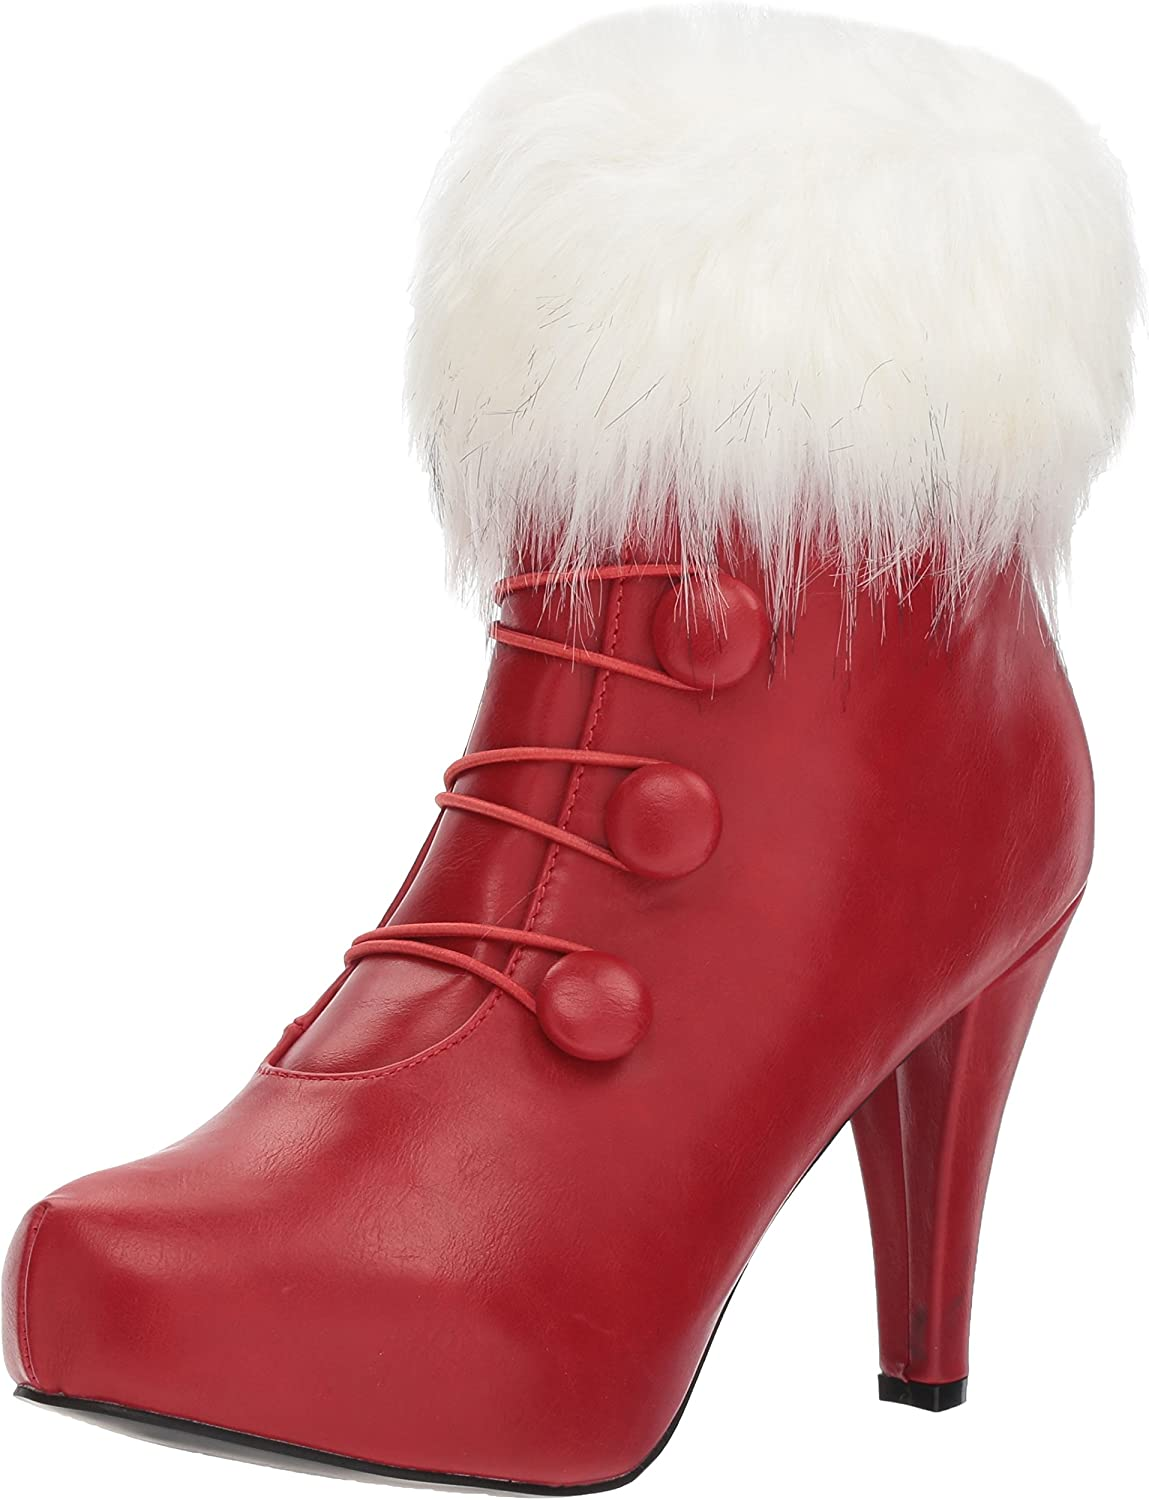 Ellie shoes Womens 414-claus Boot